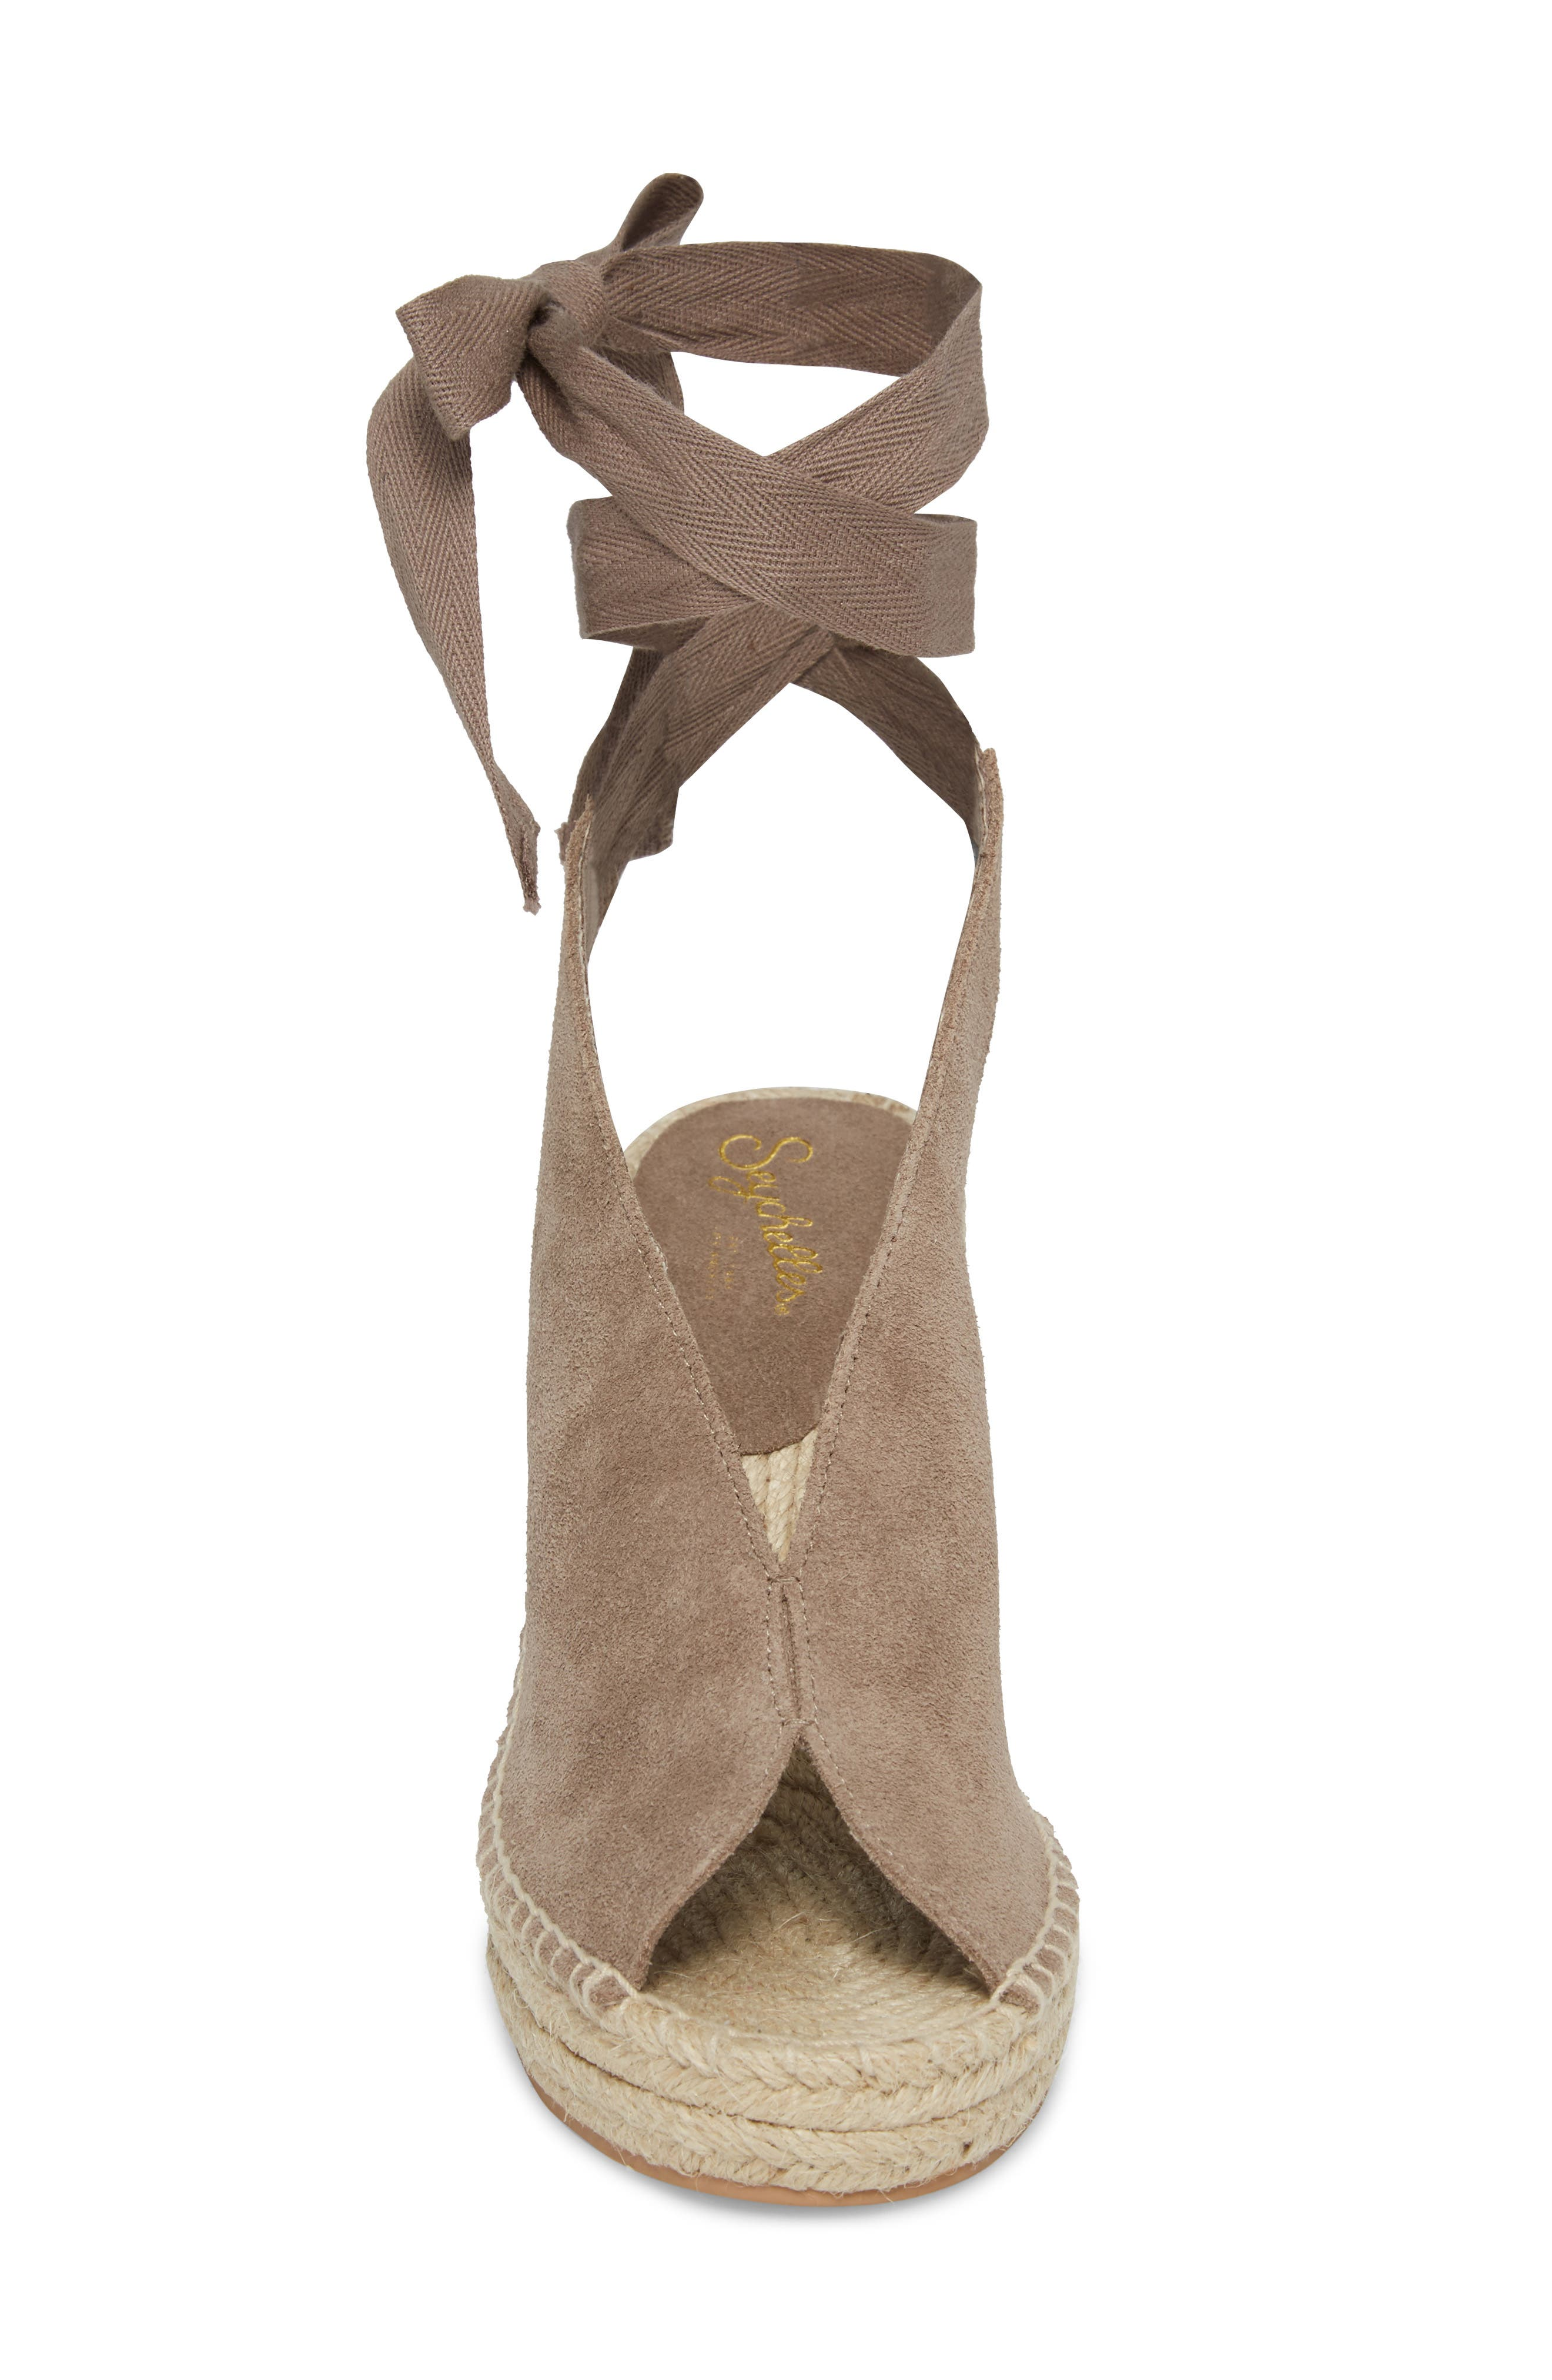 Interrelated Espadrille Wedge Sandal,                             Alternate thumbnail 5, color,                             Taupe Suede